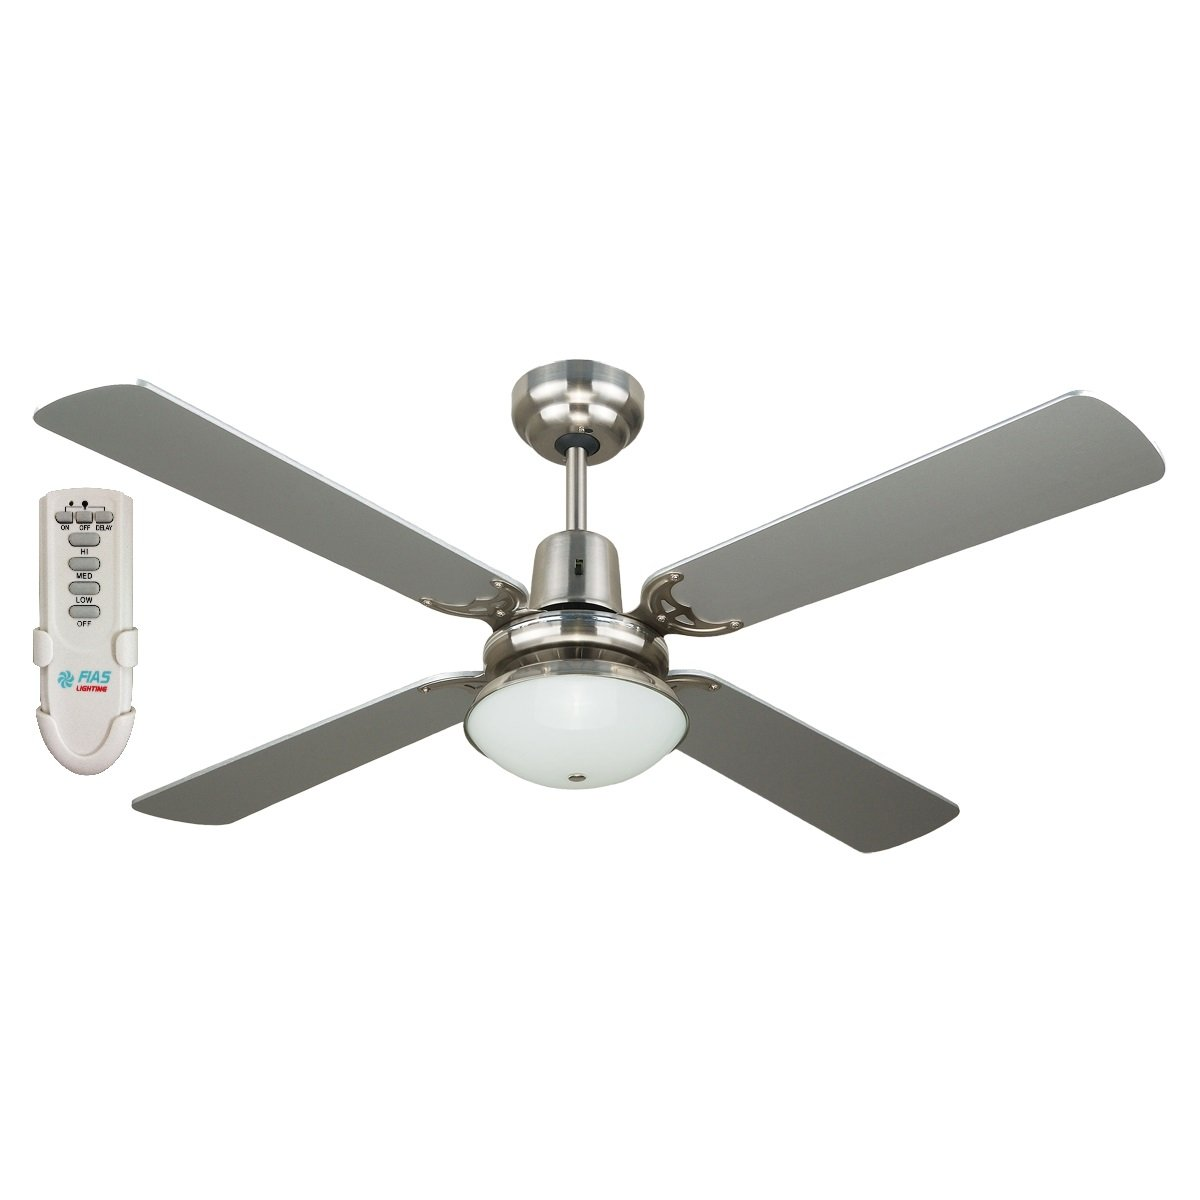 Control Ceiling Fan : Ramo inch ceiling fan with light and remote control